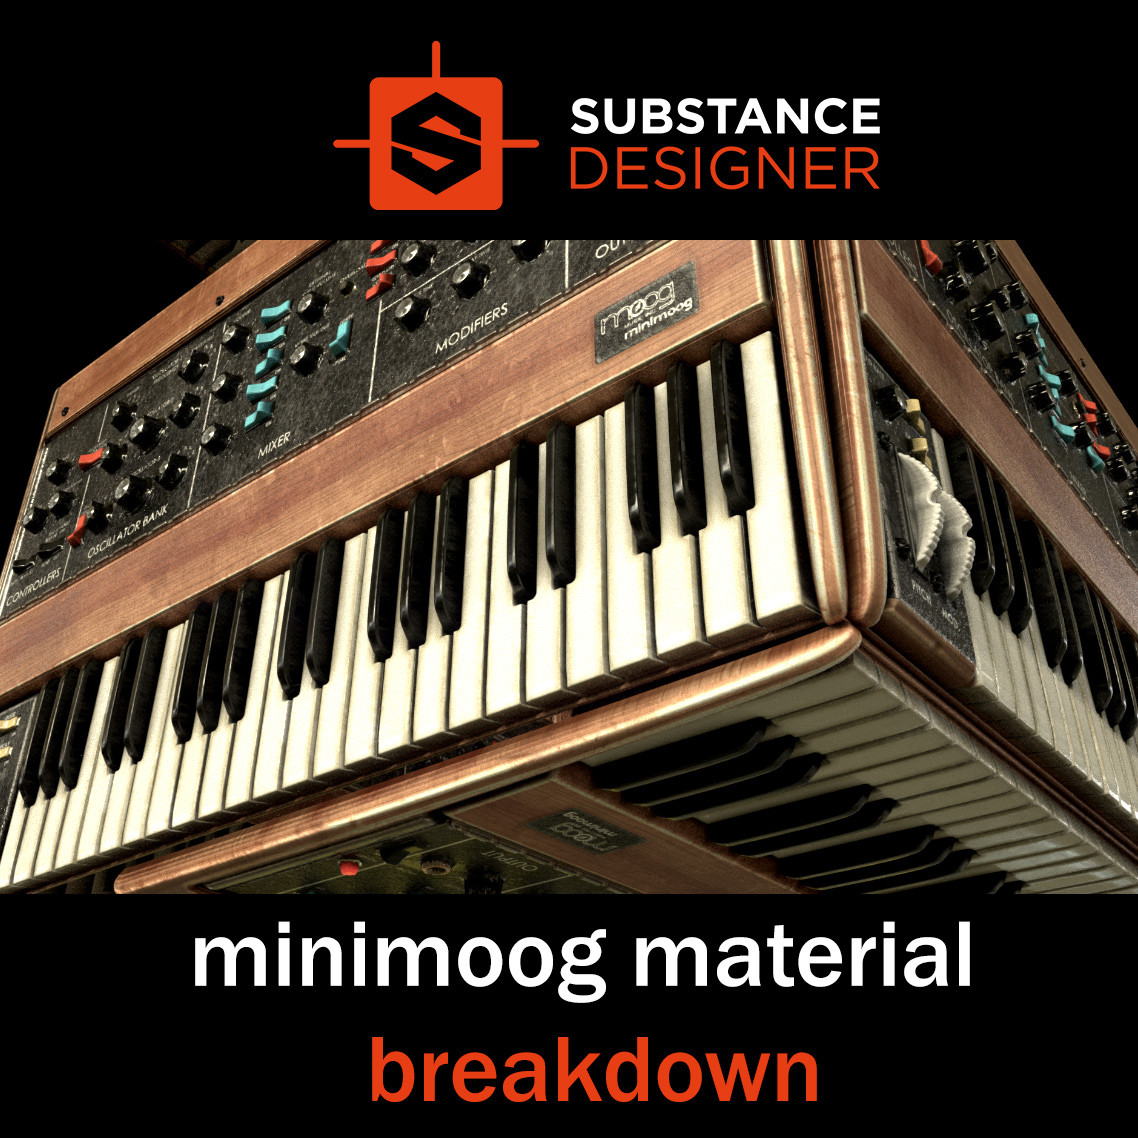 Minimoog material Breakdown - 100% Substance Designer